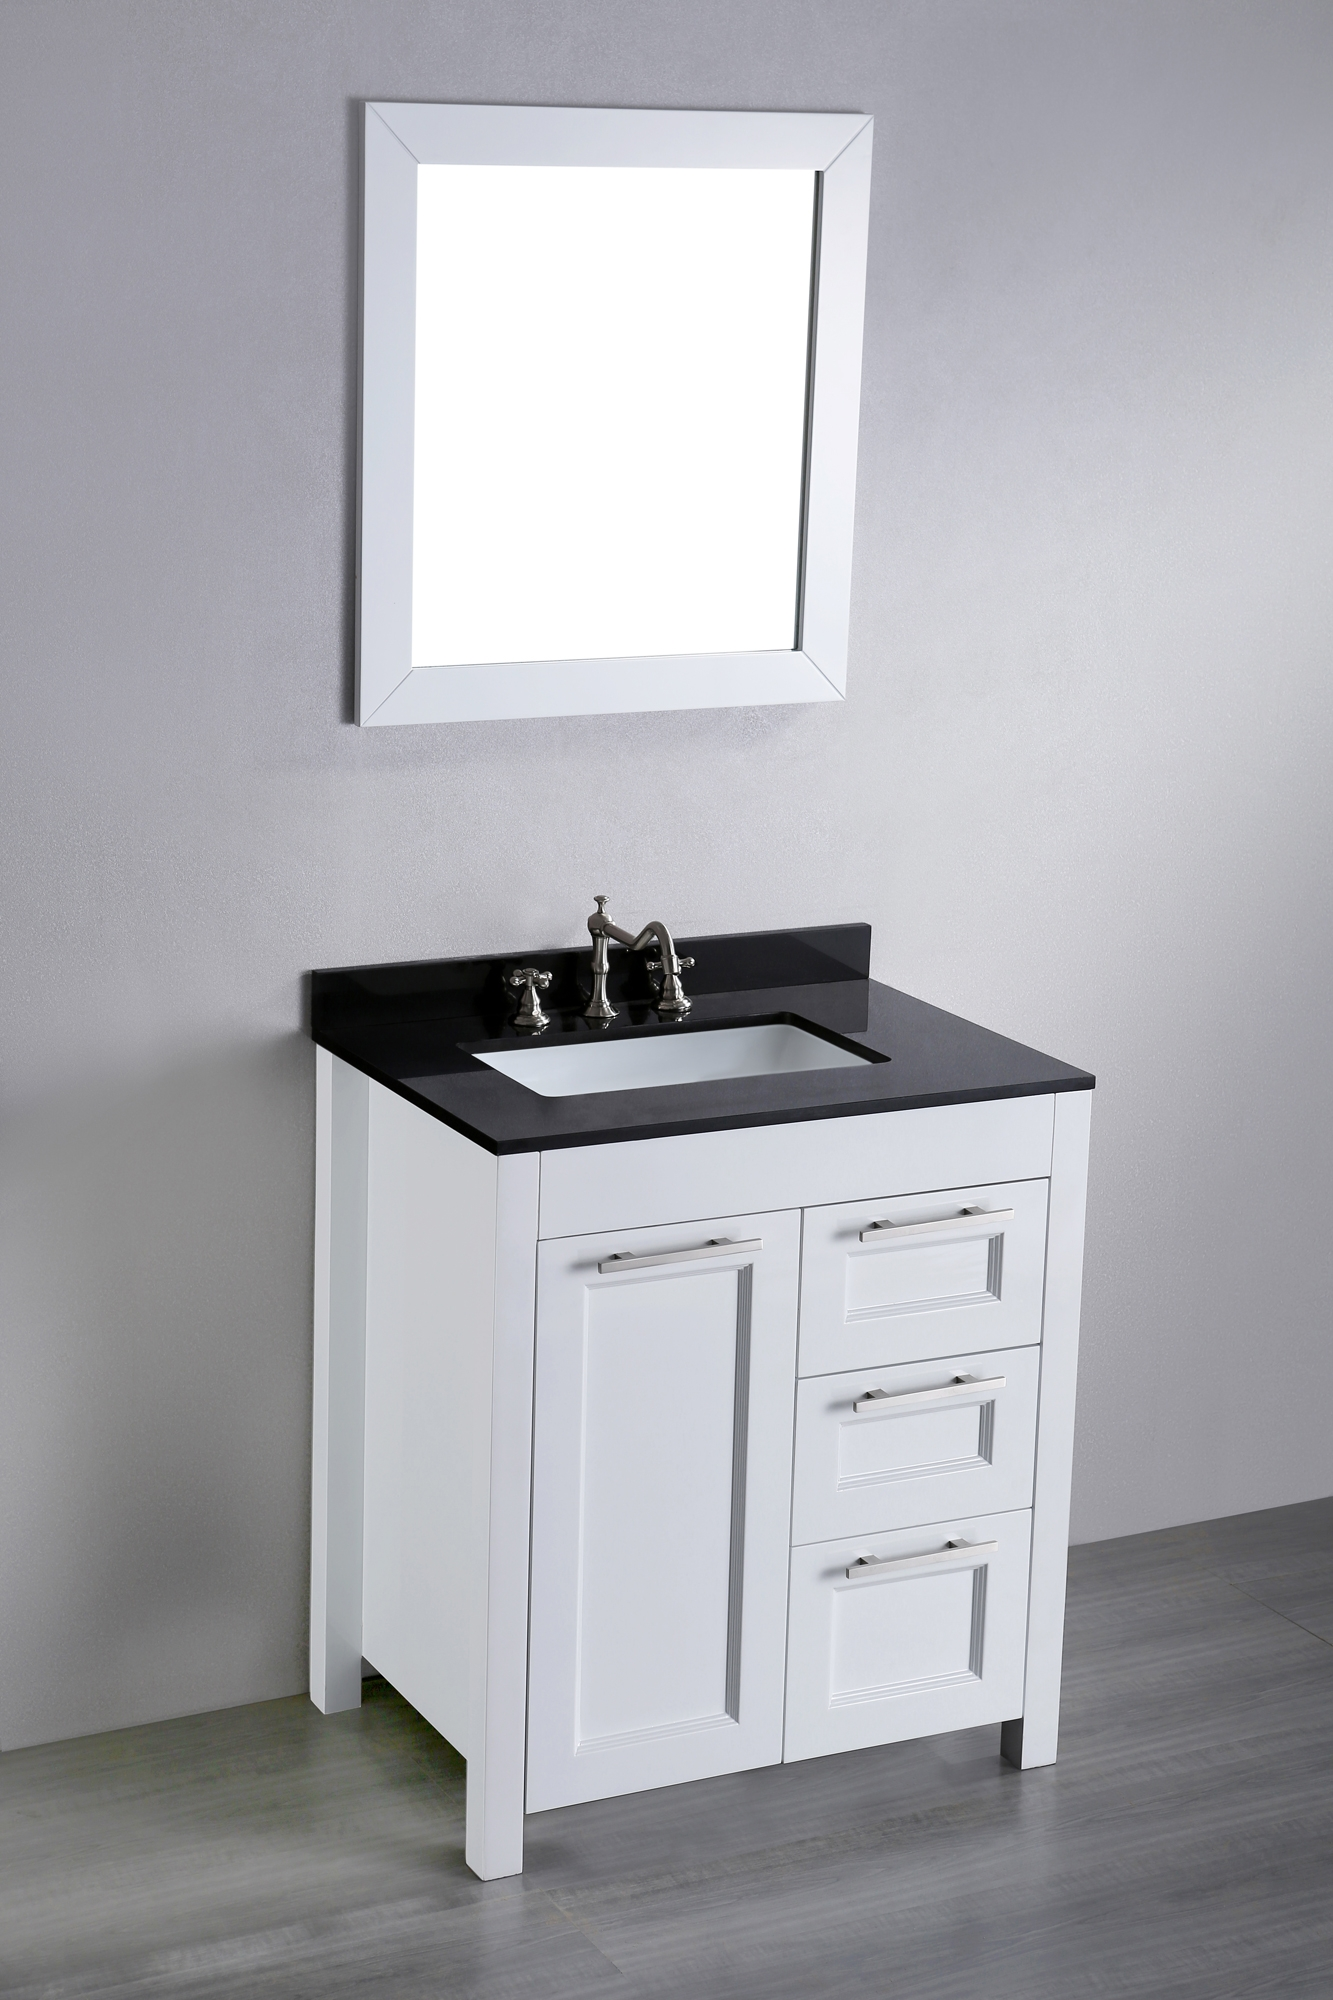 30 Inch Bathroom Vanity Top With Sink